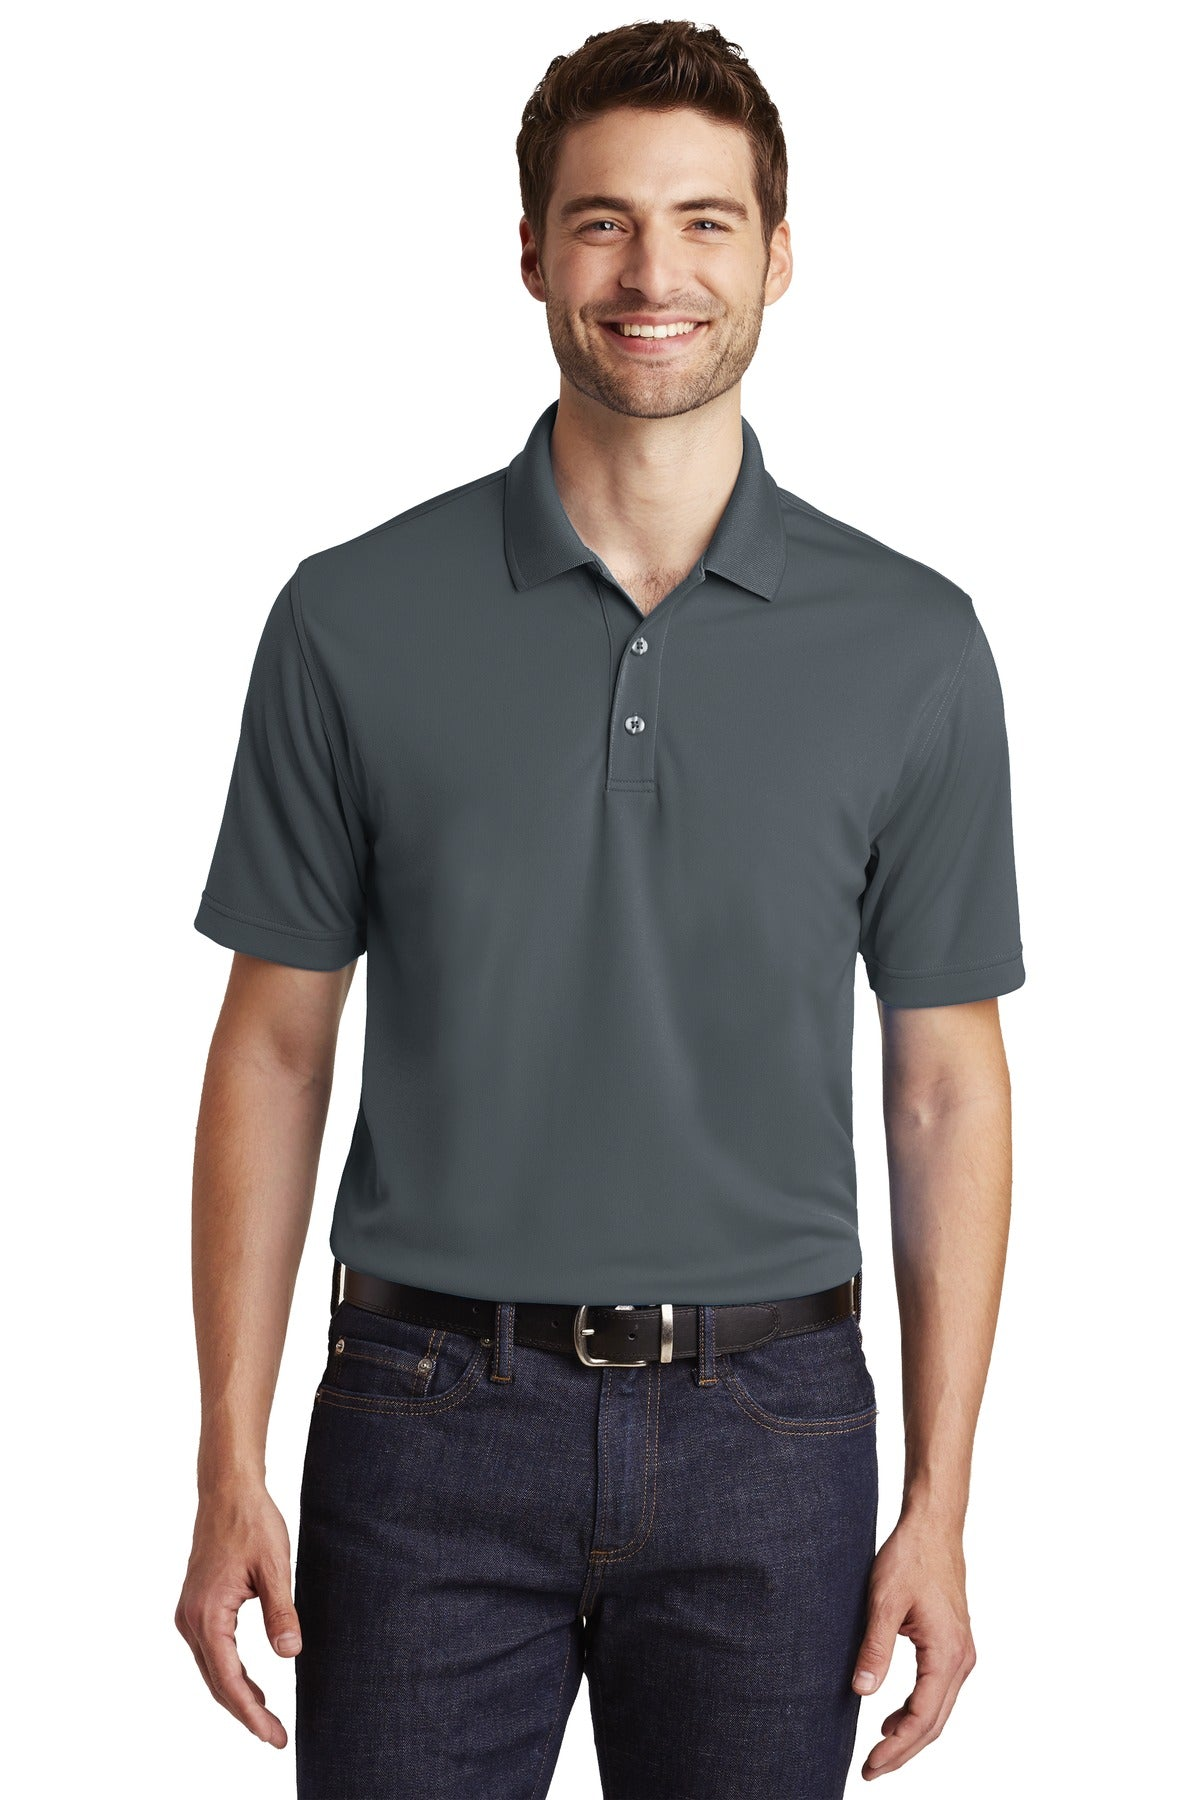 True Royal Port Authority Dry Zone® UV Micro-Mesh Pocket Polo.